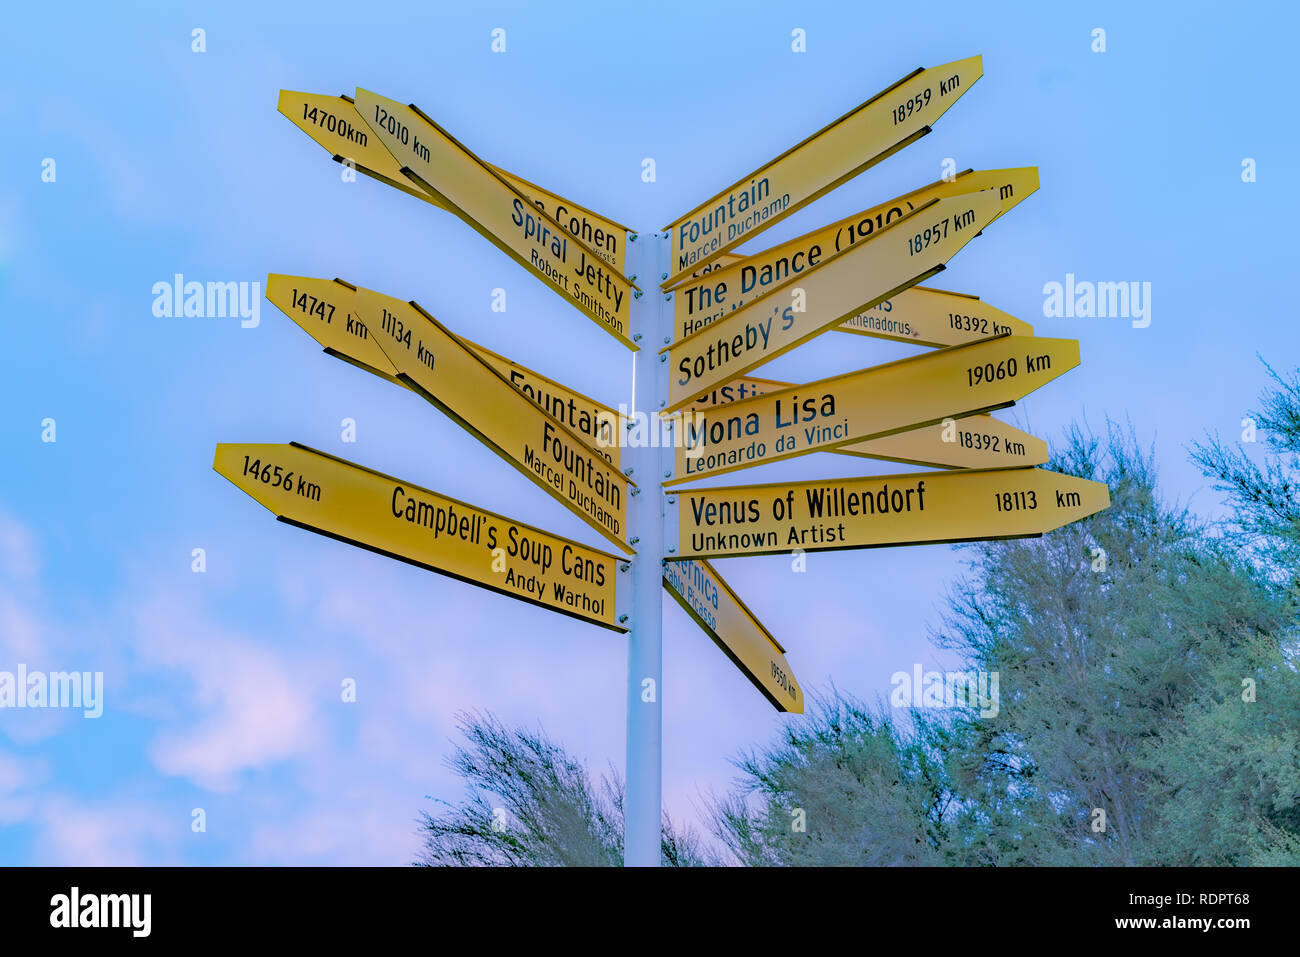 Famous places pointed by sign in Christchurch New Zealand - Stock Image